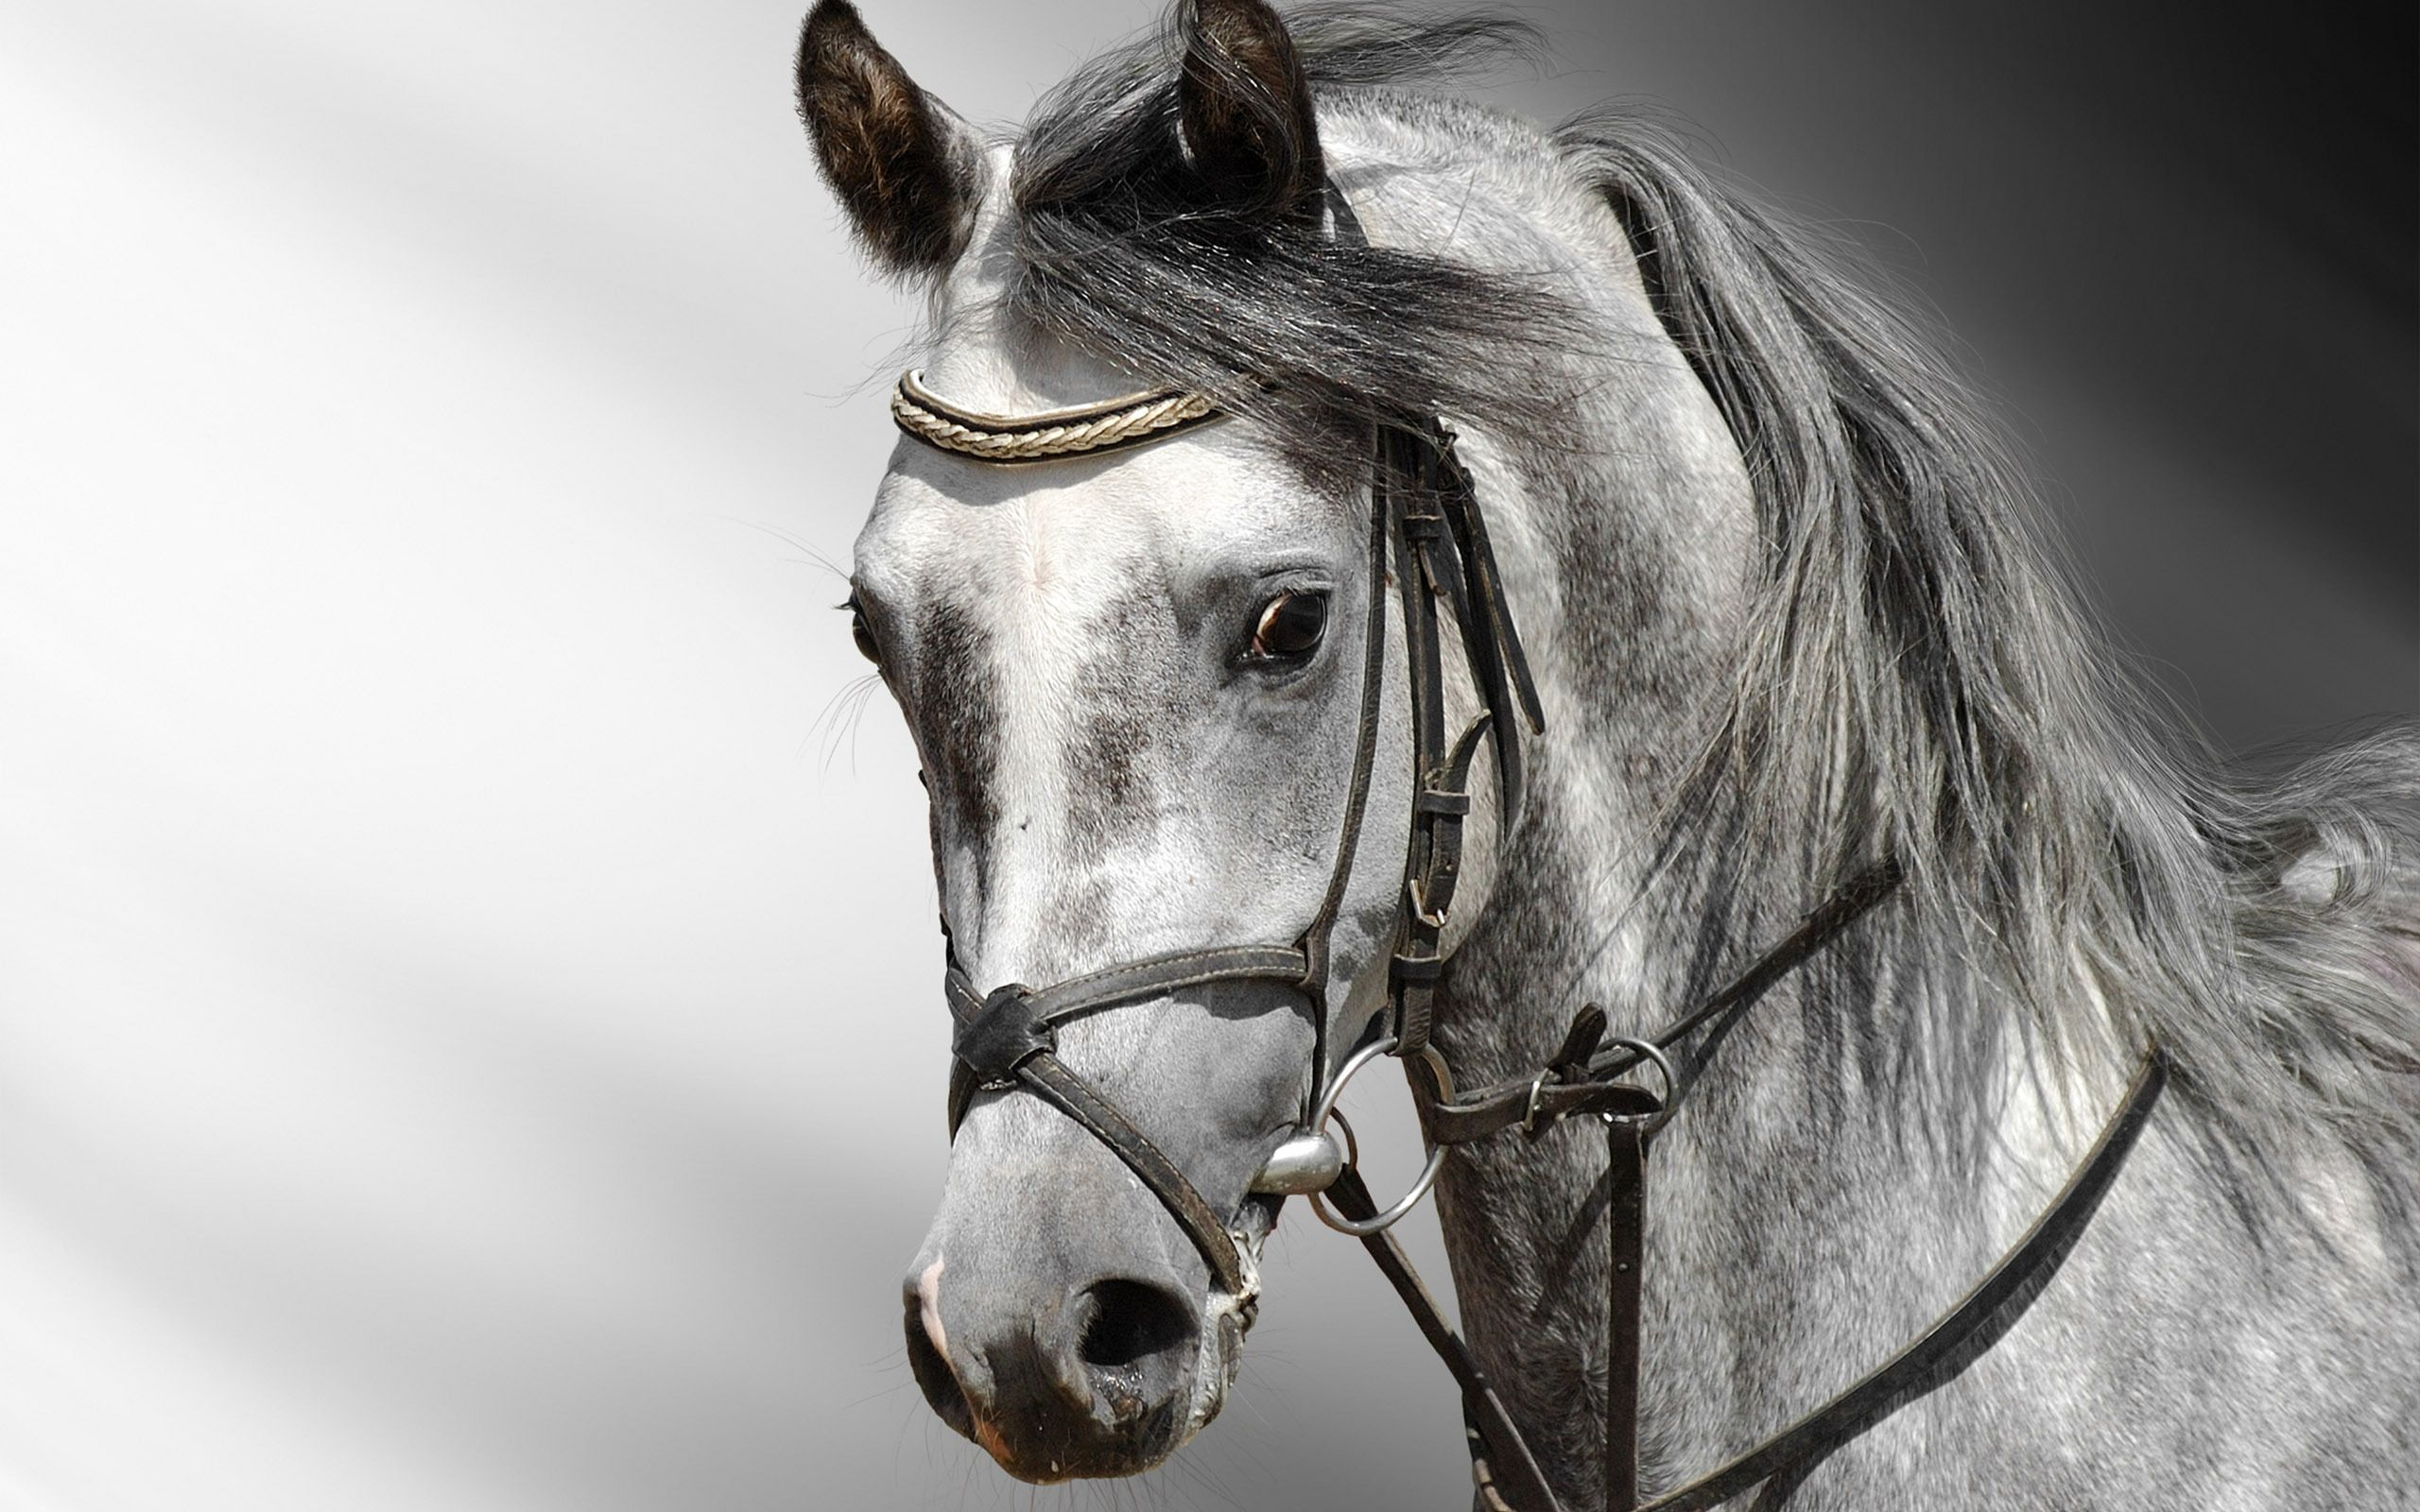 horse wallpapers free download